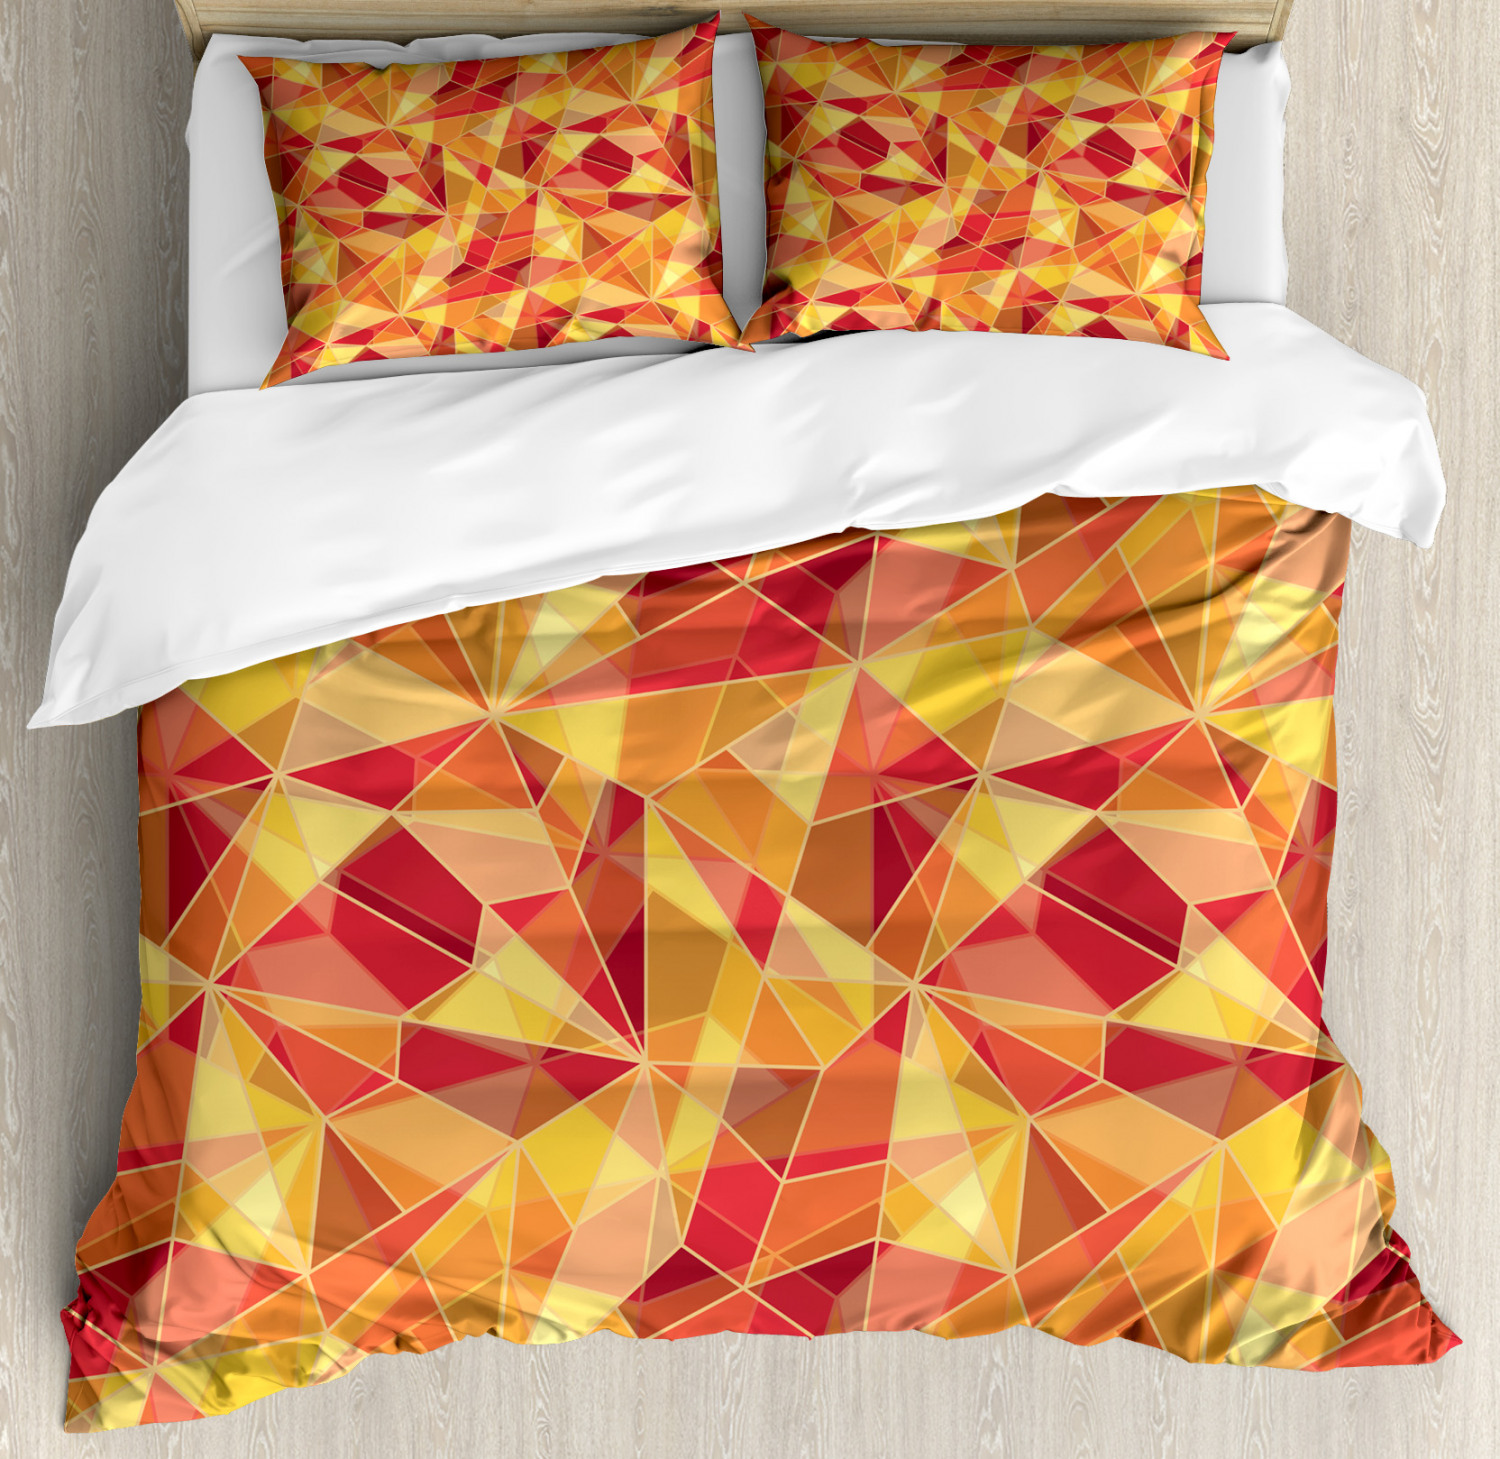 Geometric Duvet Cover Set with Pillow Shams Mosaic Digital Style Print